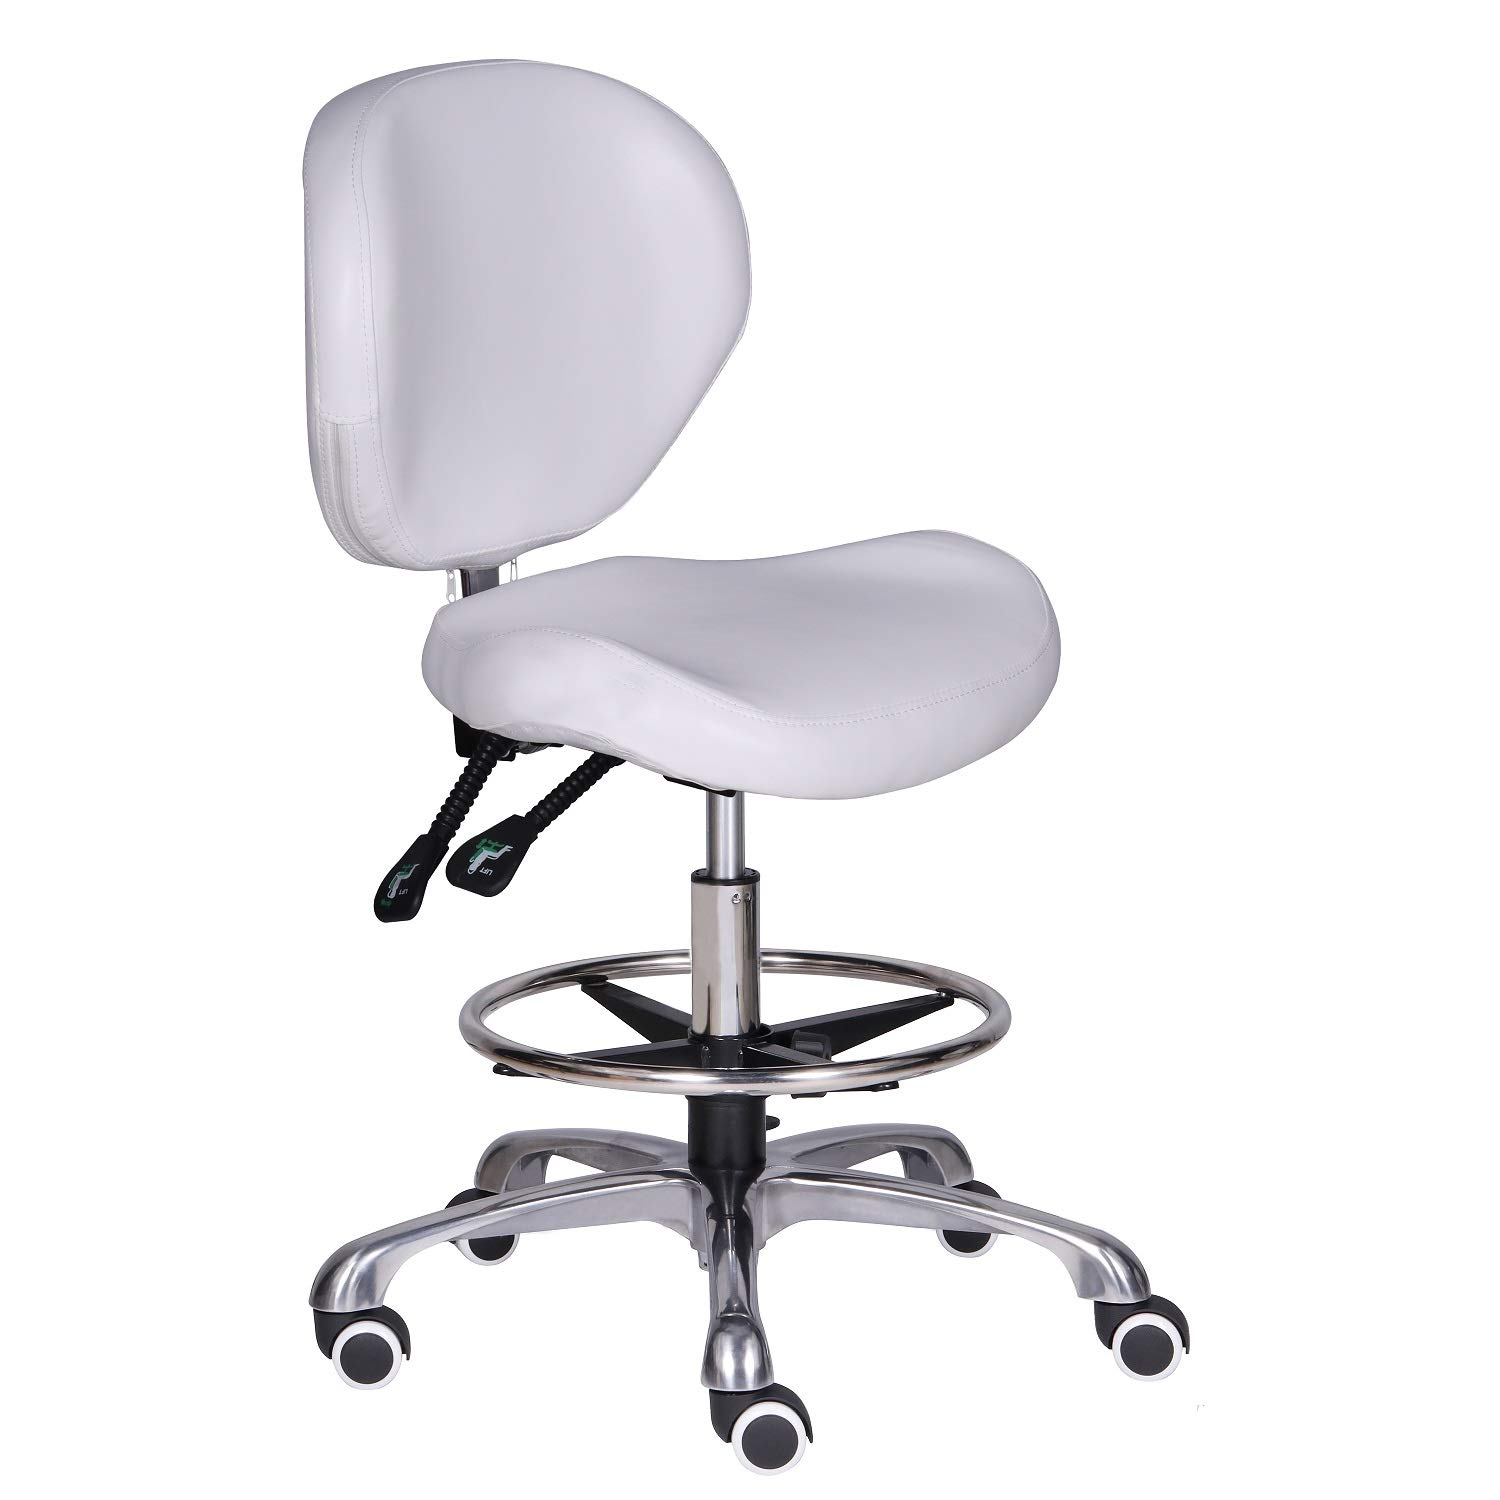 Kaleurrier Adjustable Stools Drafting Chair with Backrest & Foot Rest,Tilt Back,Peneumatic Lifting Height,Swivel Seat,Rolling Wheels,for Studio,Dental,Office,Salon and Counter,Home Desk Chairs,White